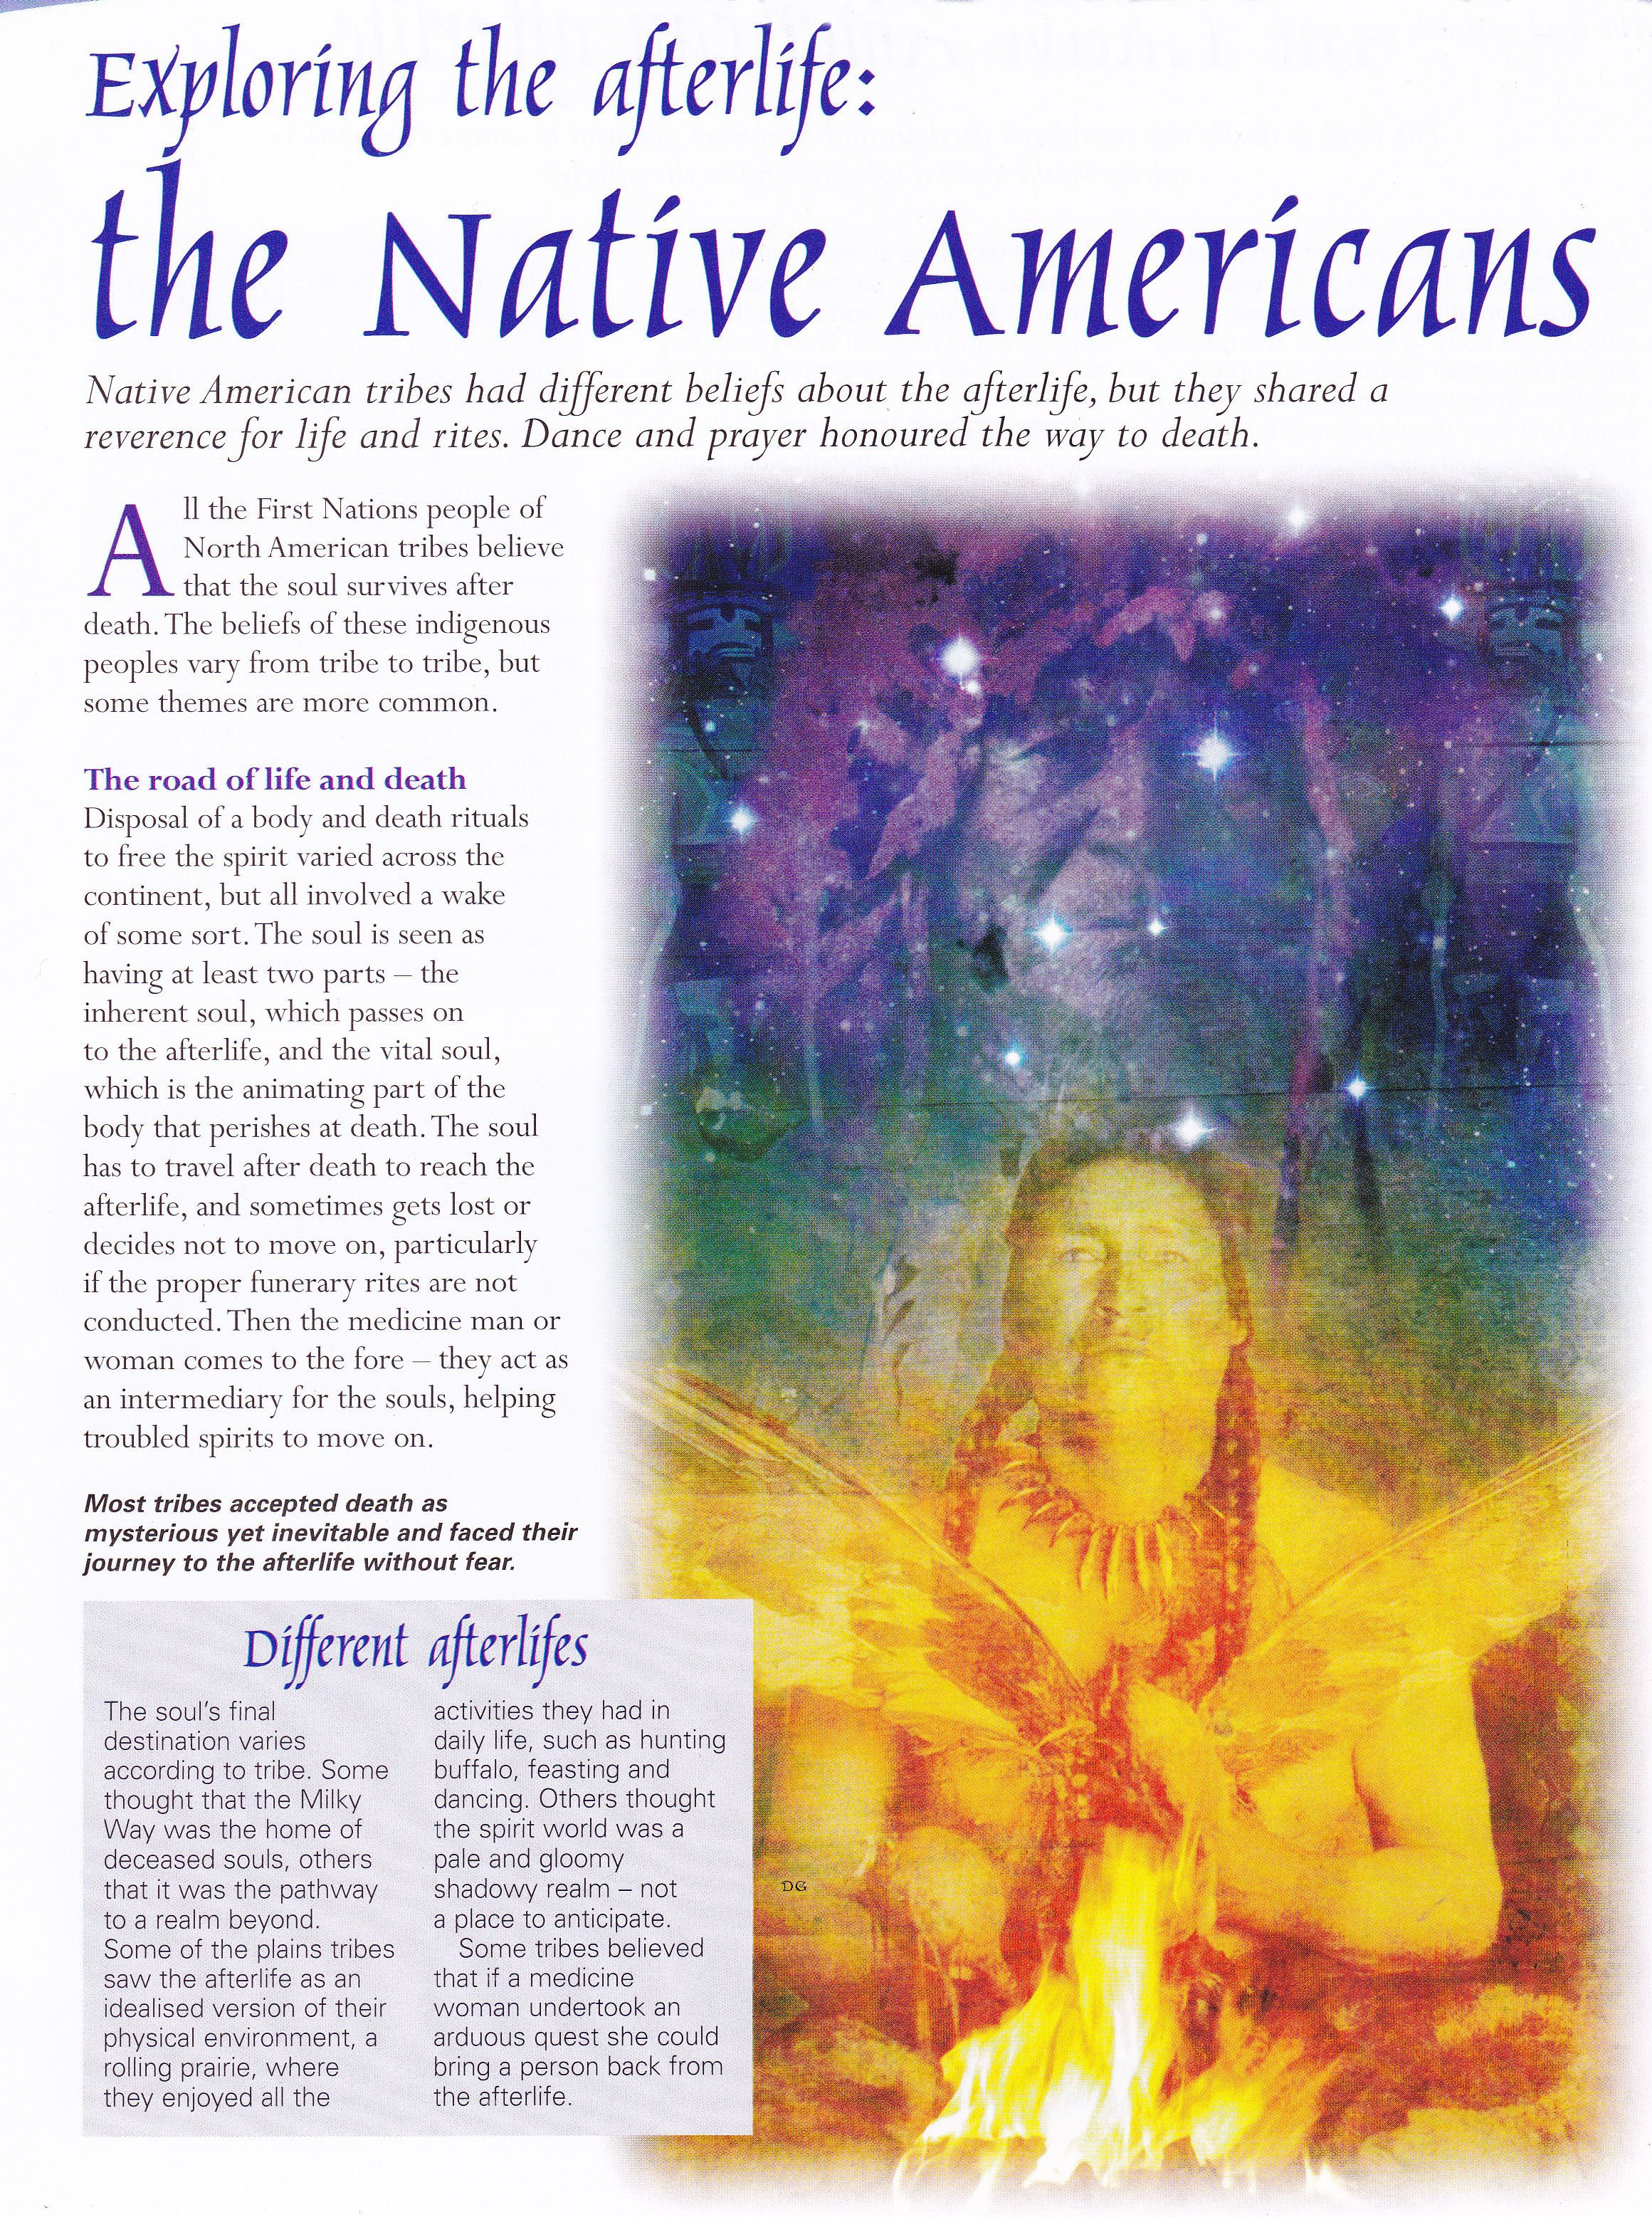 native american afterlife